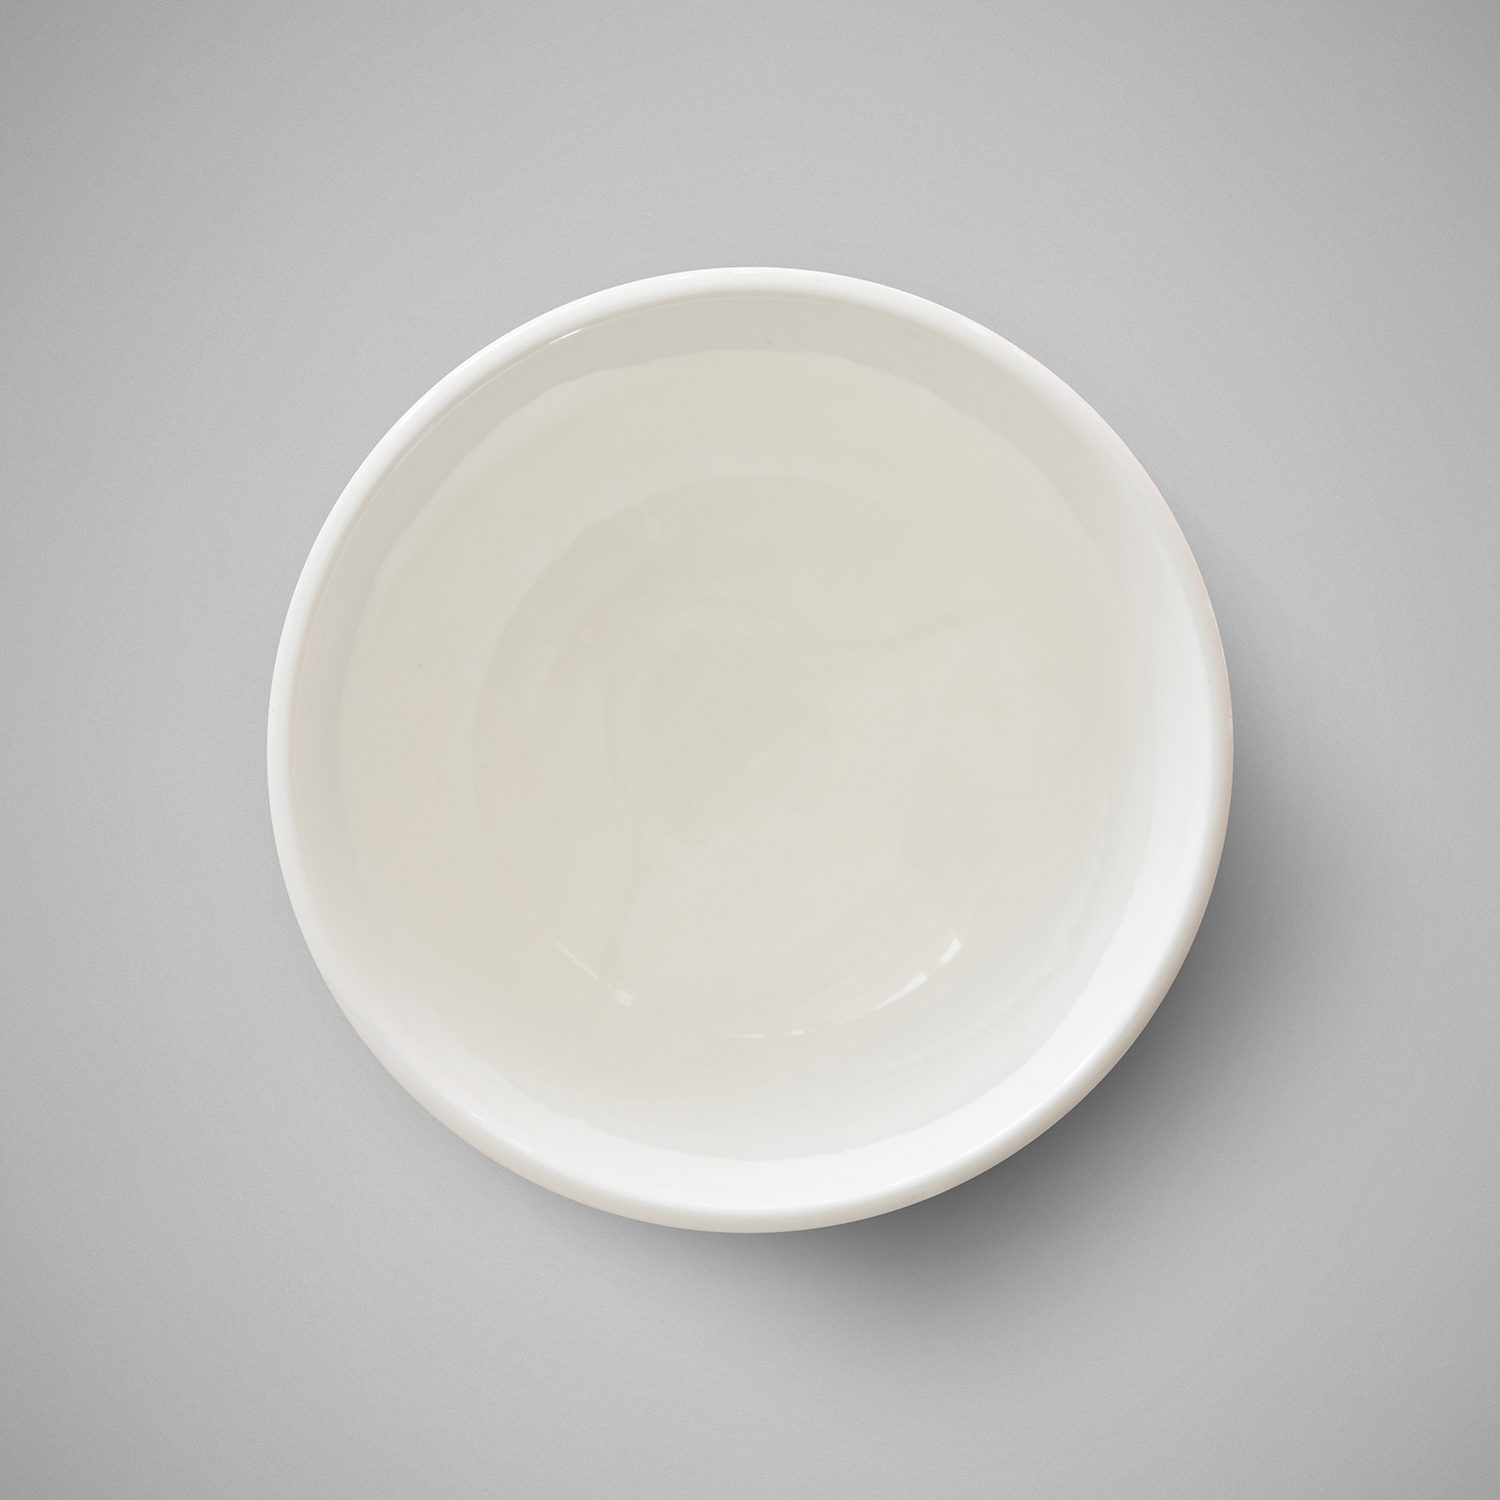 Small bowl of colourless melt and pour soap base supplied by Claranol and sold by 1875.